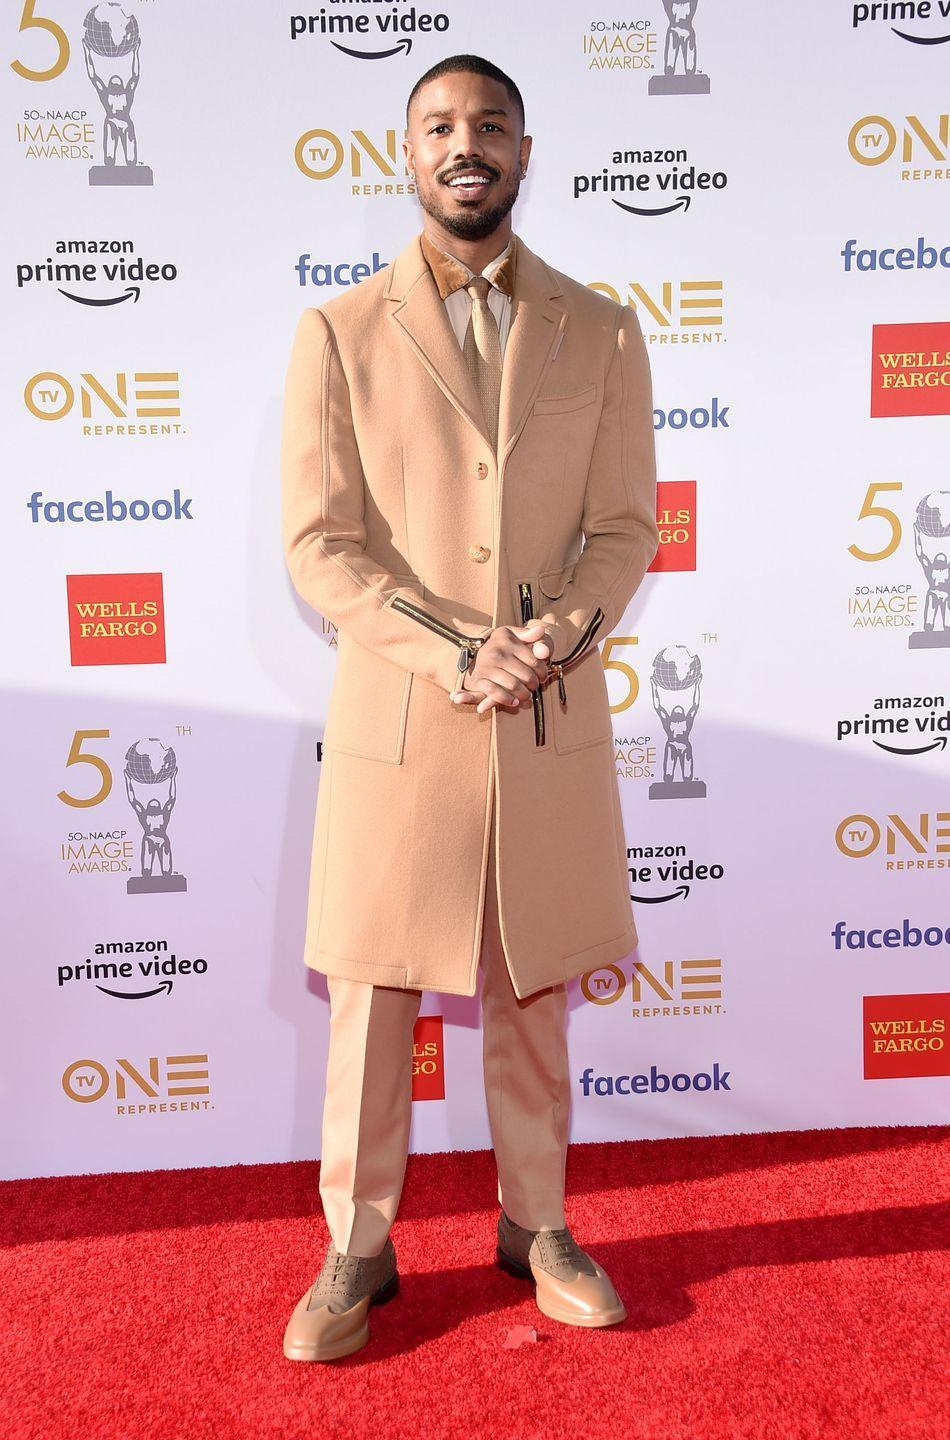 <p>In the past few years, Jordan's style has really started leaning into <em>fashion</em> fashion, and we are here for it. This all-camel look is just plain great.</p>